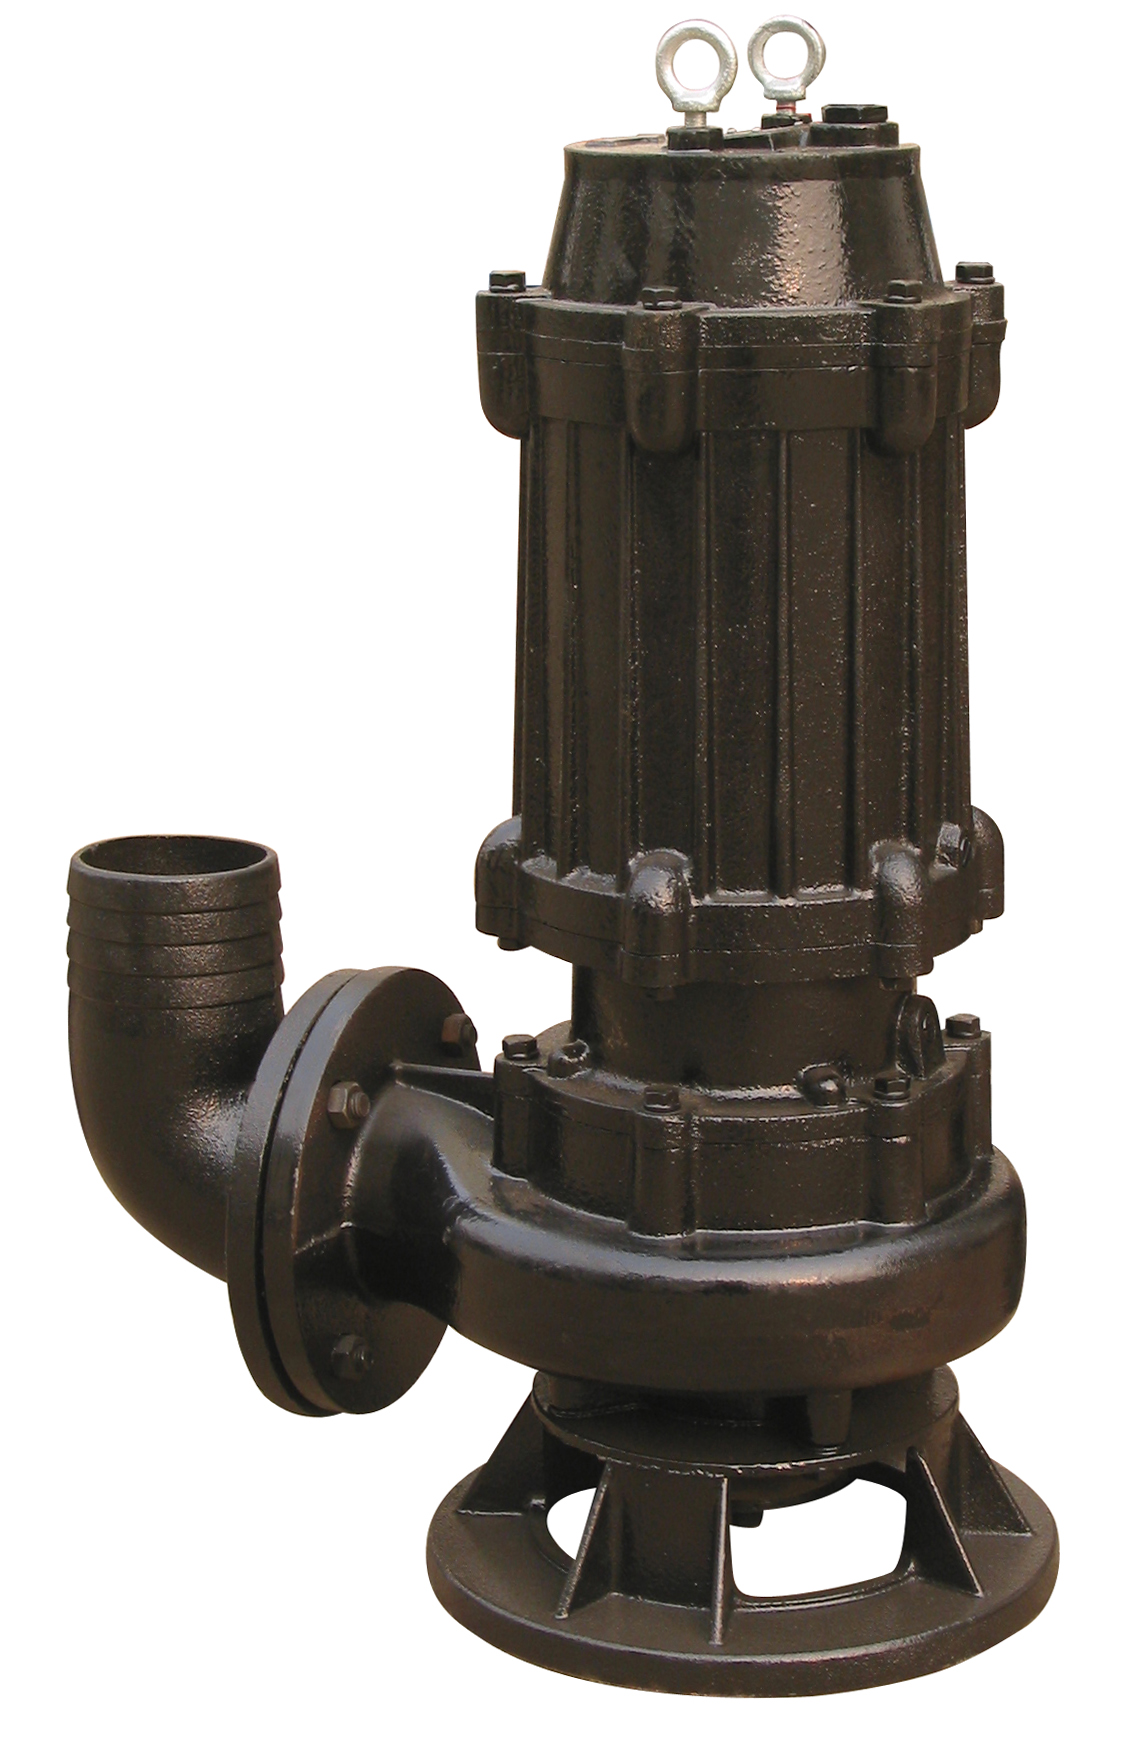 Small Sewage Pump For Home Use